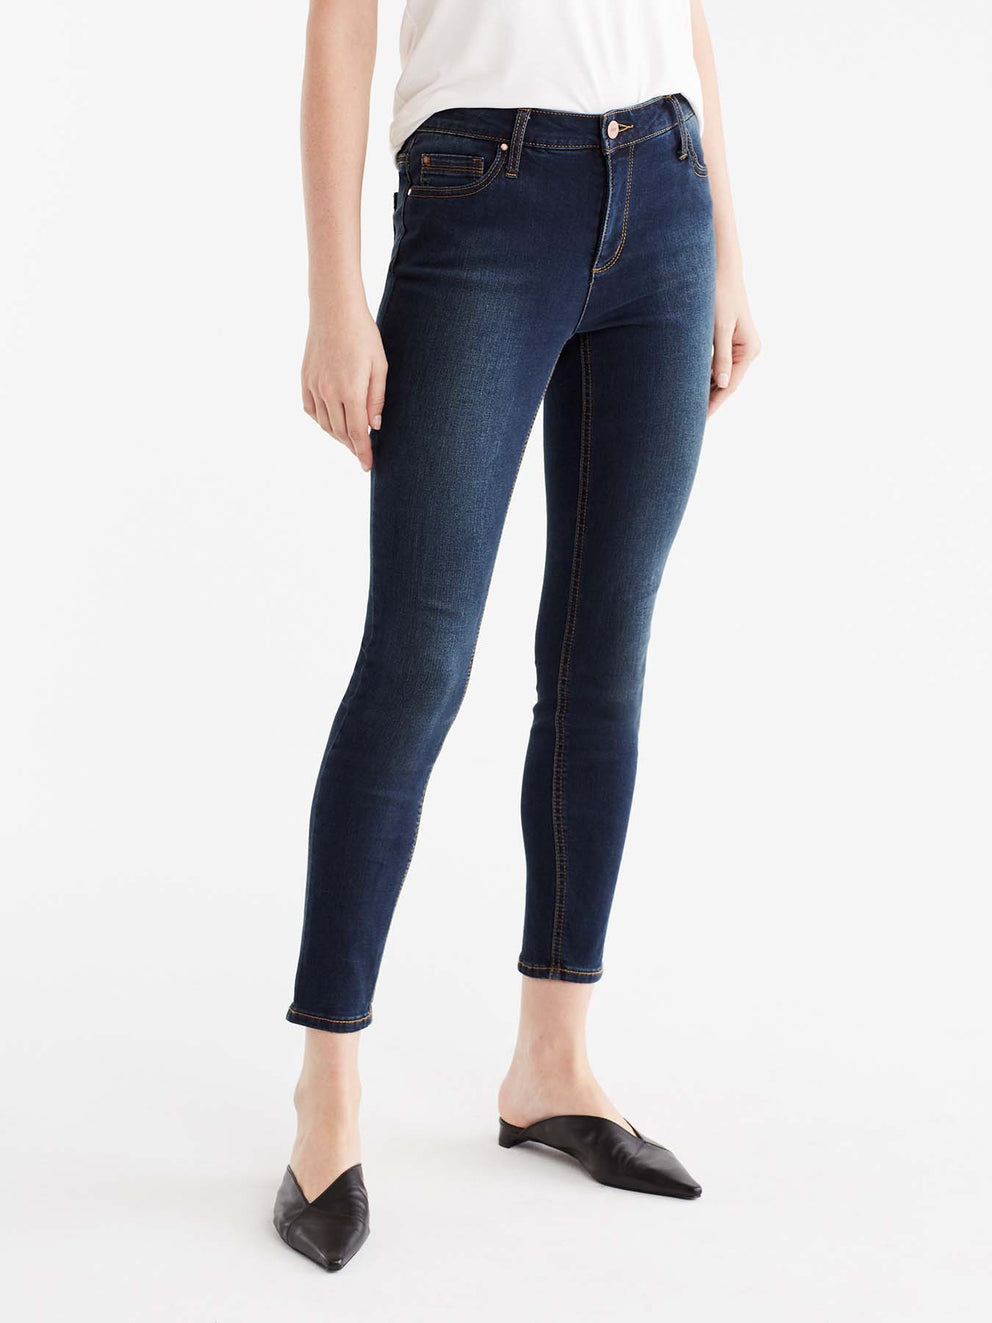 970c4358ab39e Lexington Indigo Wash Curvy Skinny Jeans – Jones New York